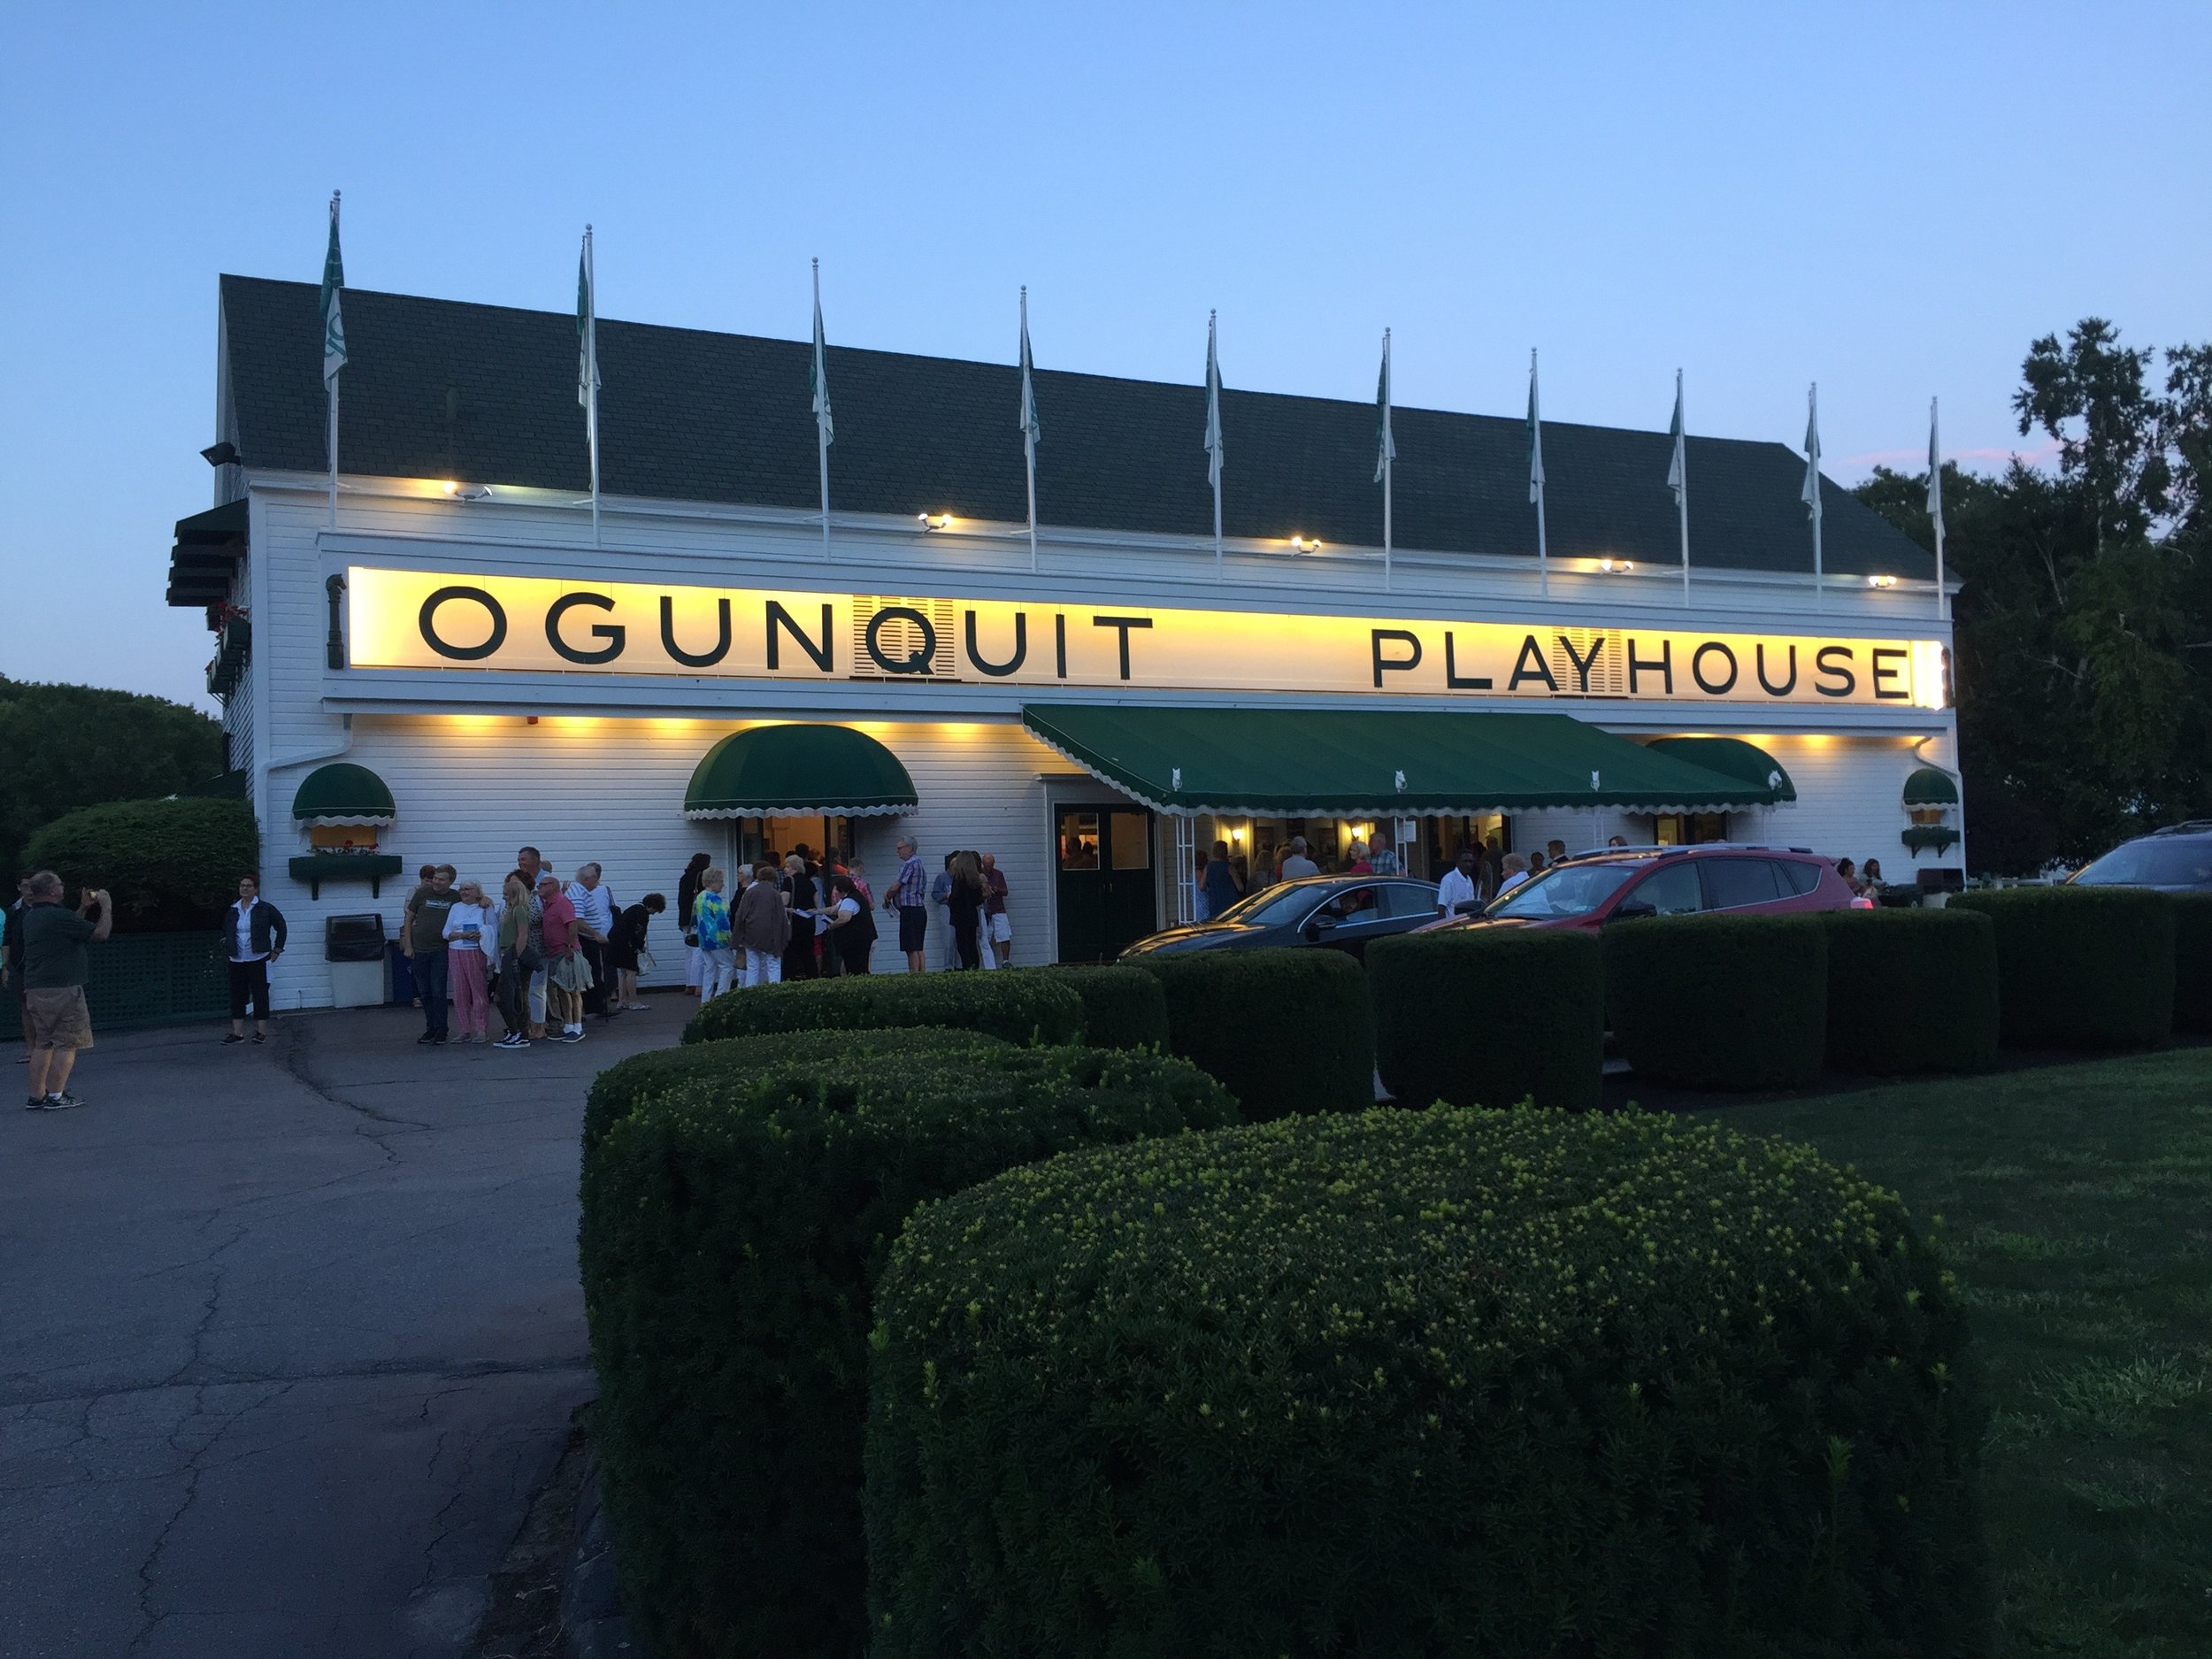 The Ogunquit Playhouse